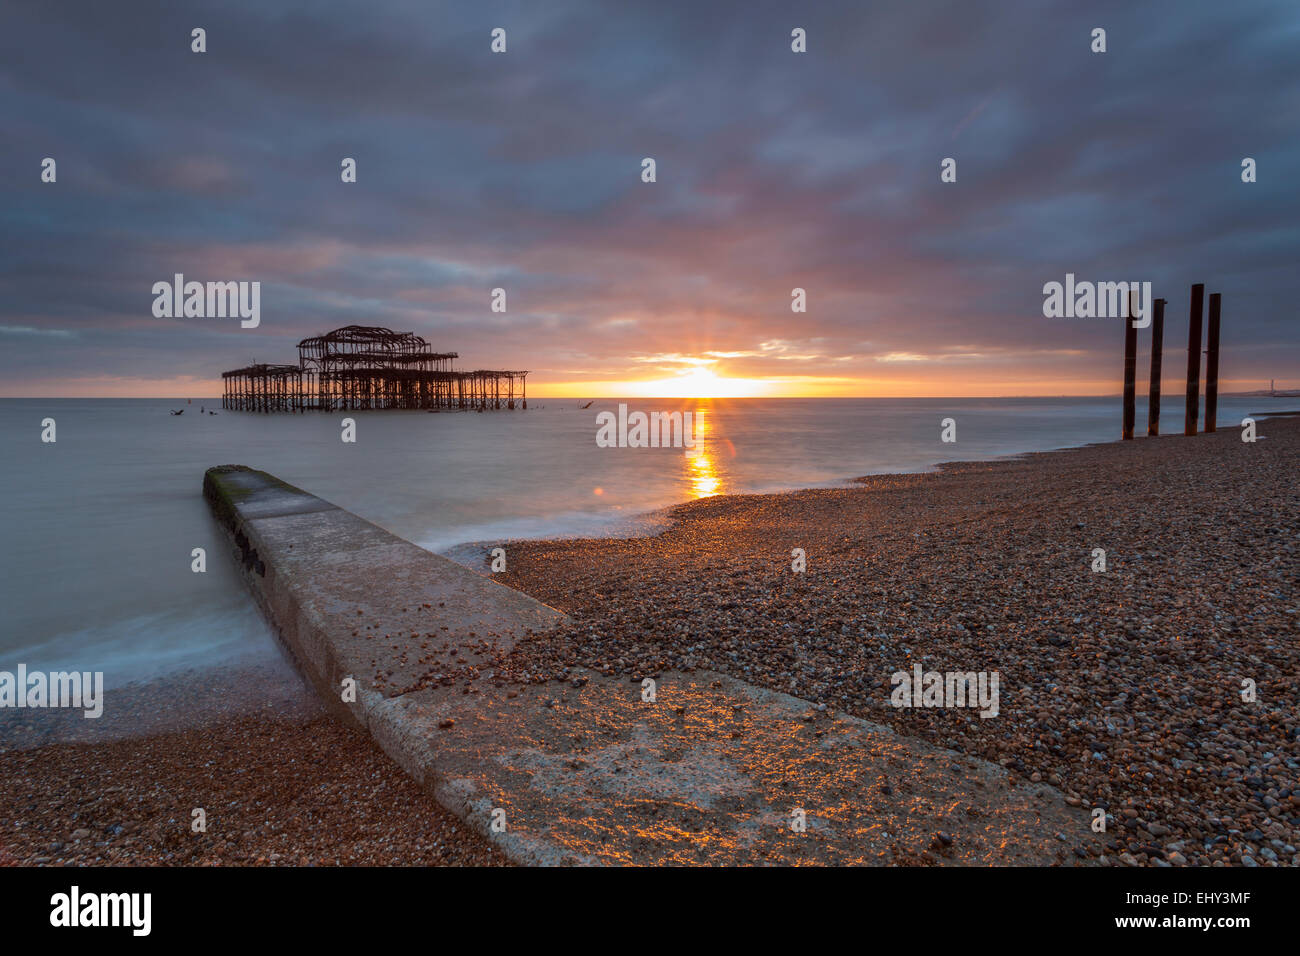 Sunset at West Pier ruins in Brighton, East Sussex, England. - Stock Image